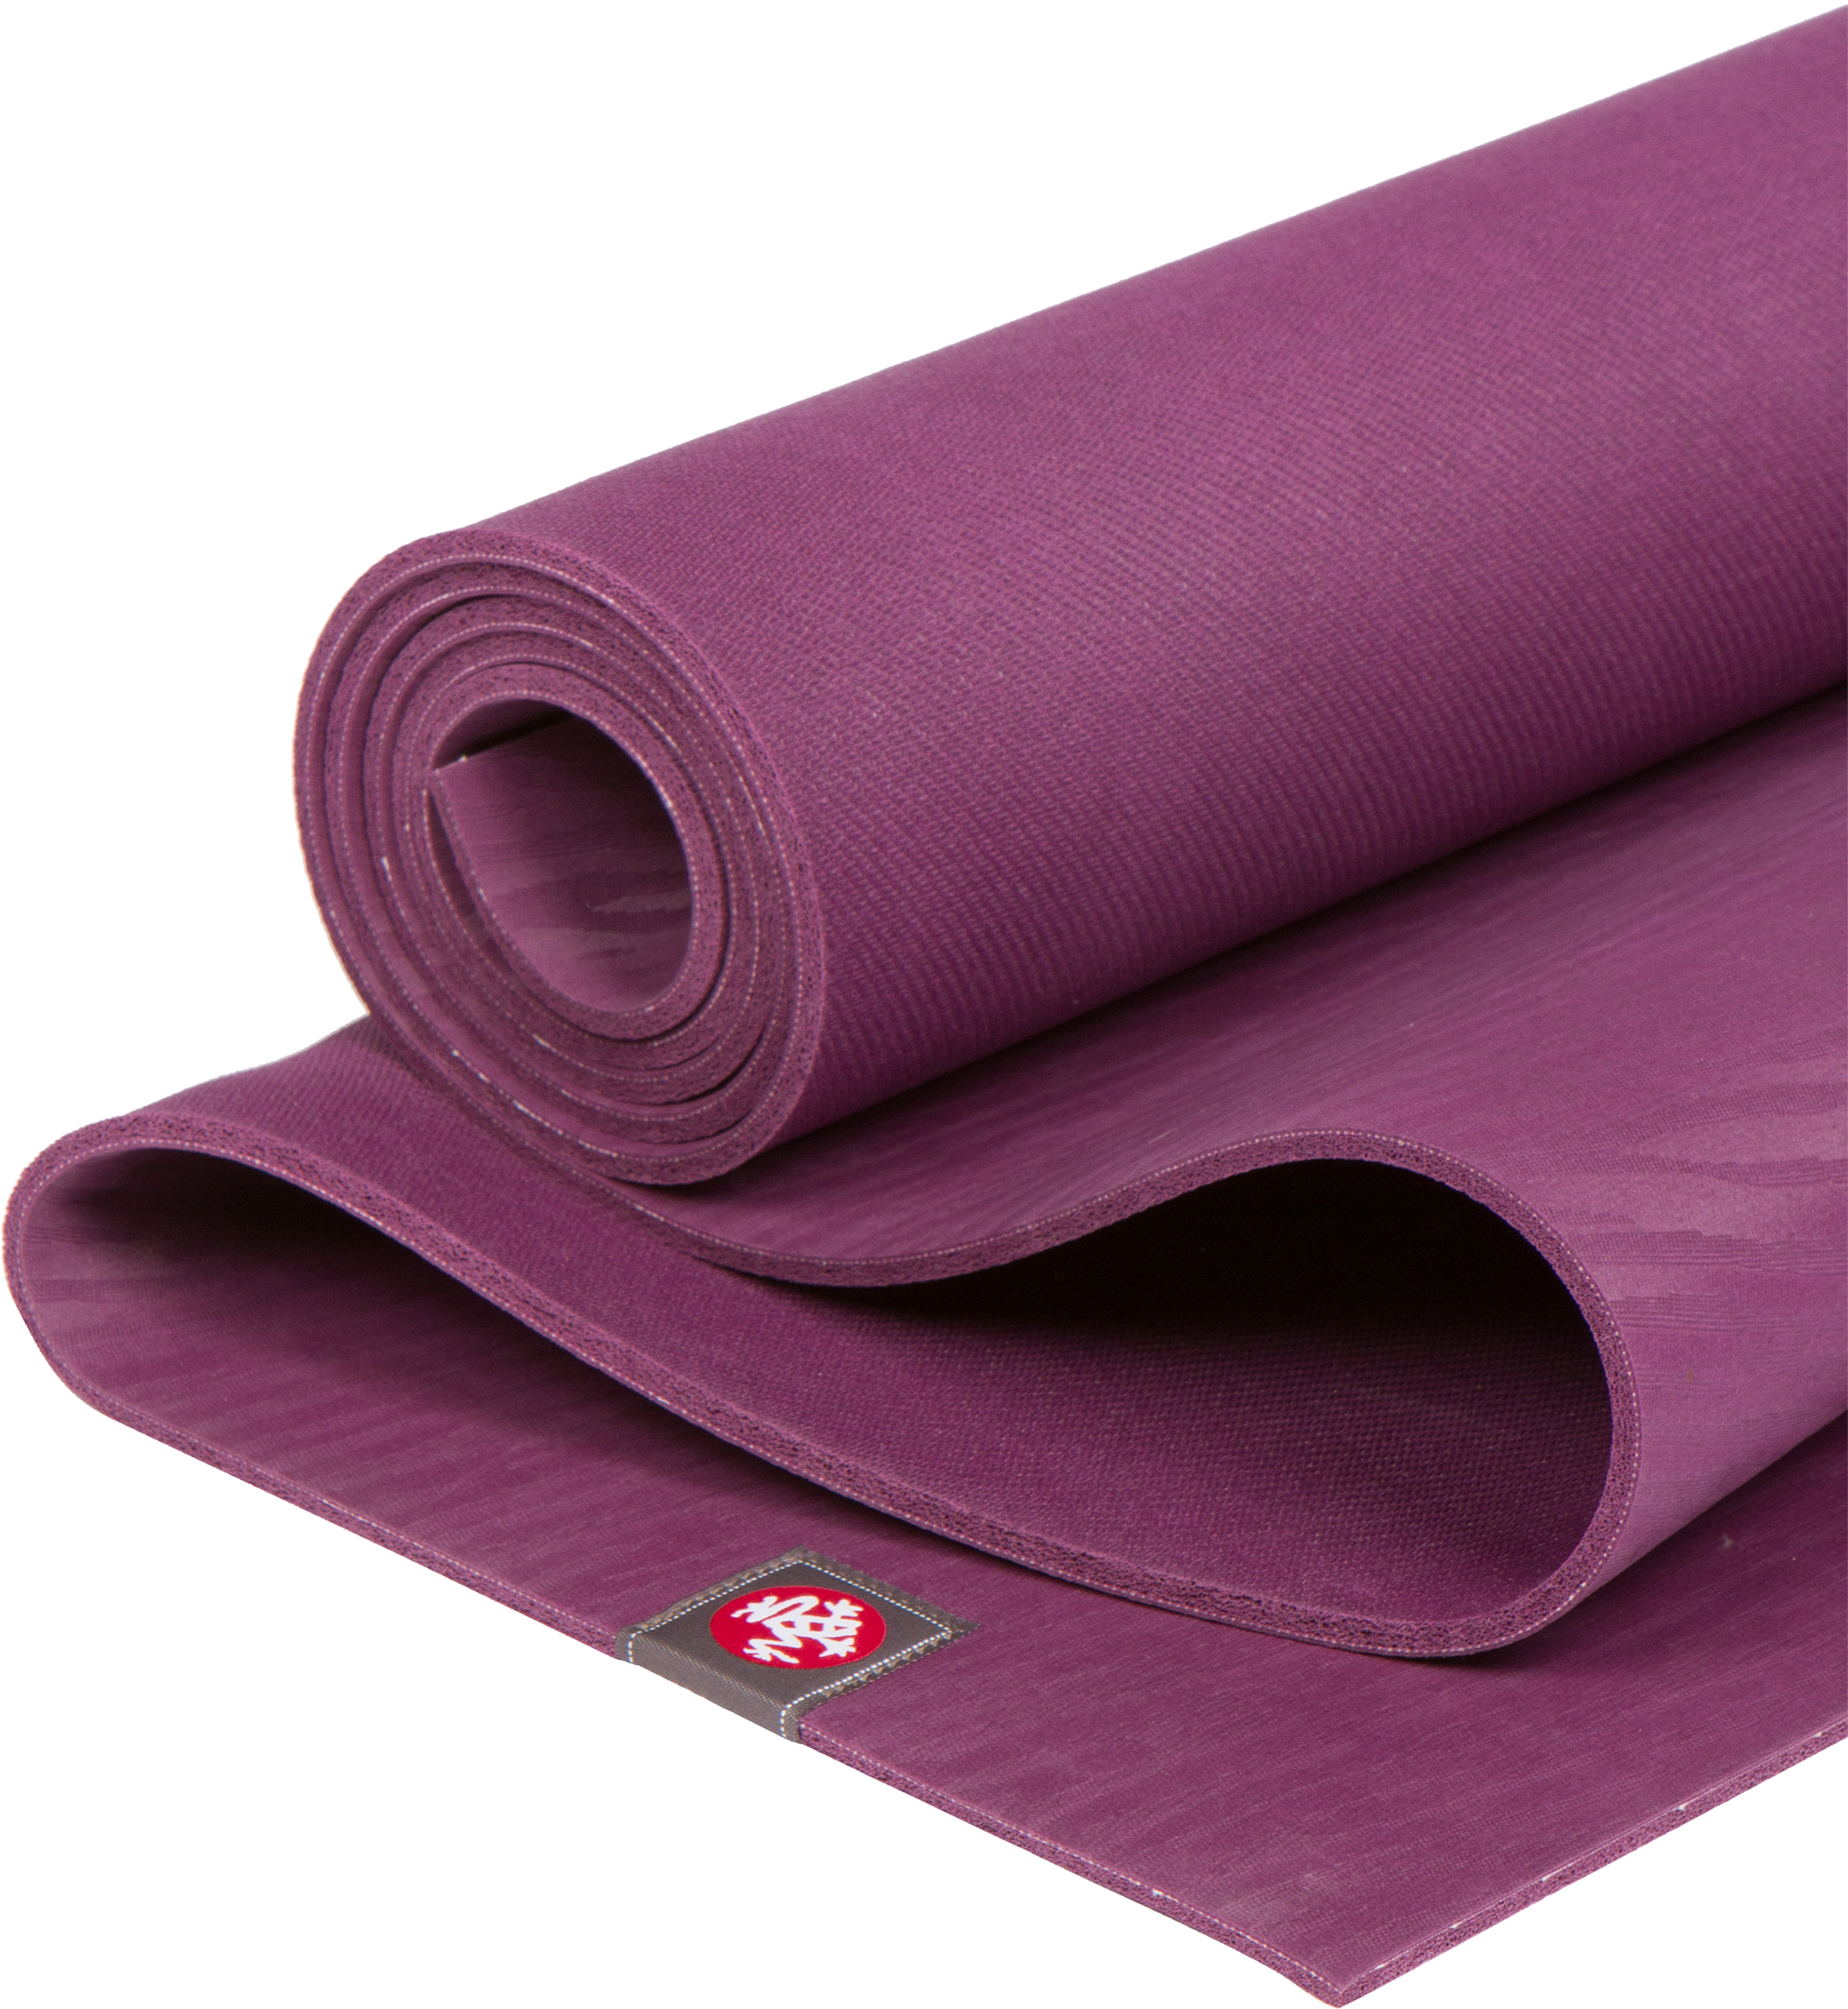 yoga product emporium mat large aubergine organic brands buckwheat lotuscrafts bolster mats luxury